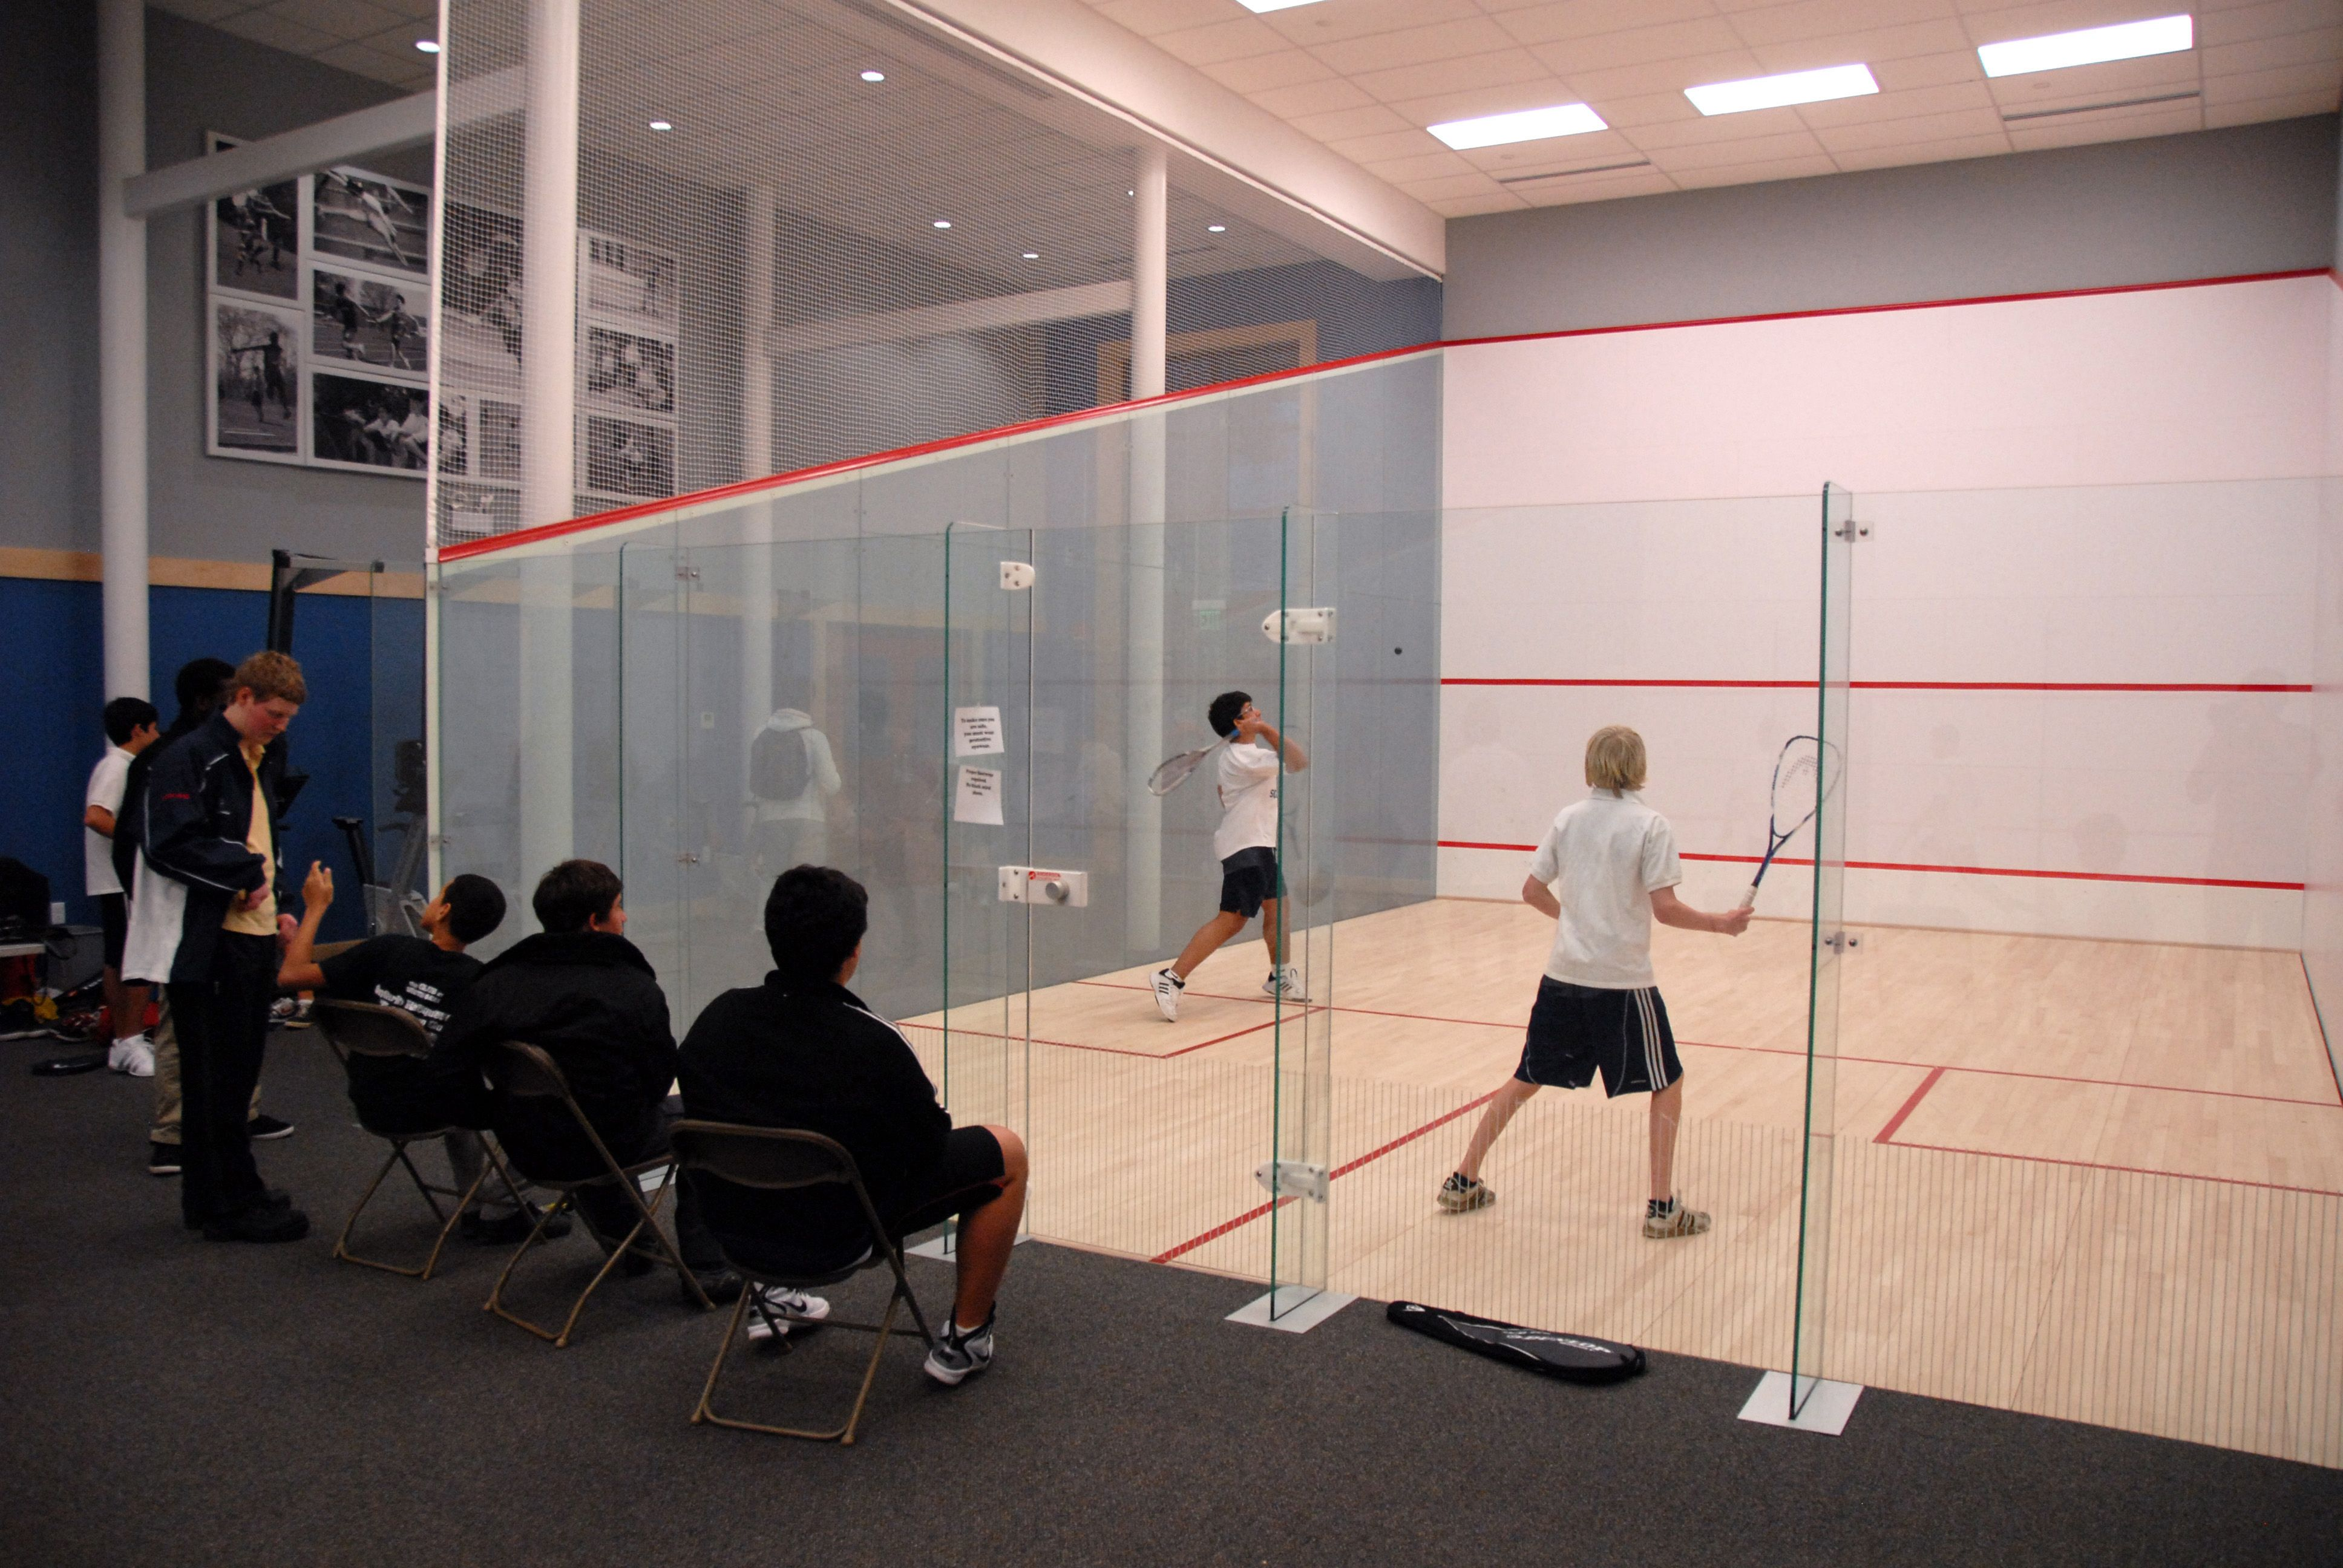 The Squash Courts At Eaglebrook School Eaglebrook Has Six International Squash Courts Located In The Sports Center Court Squash Game School Campus